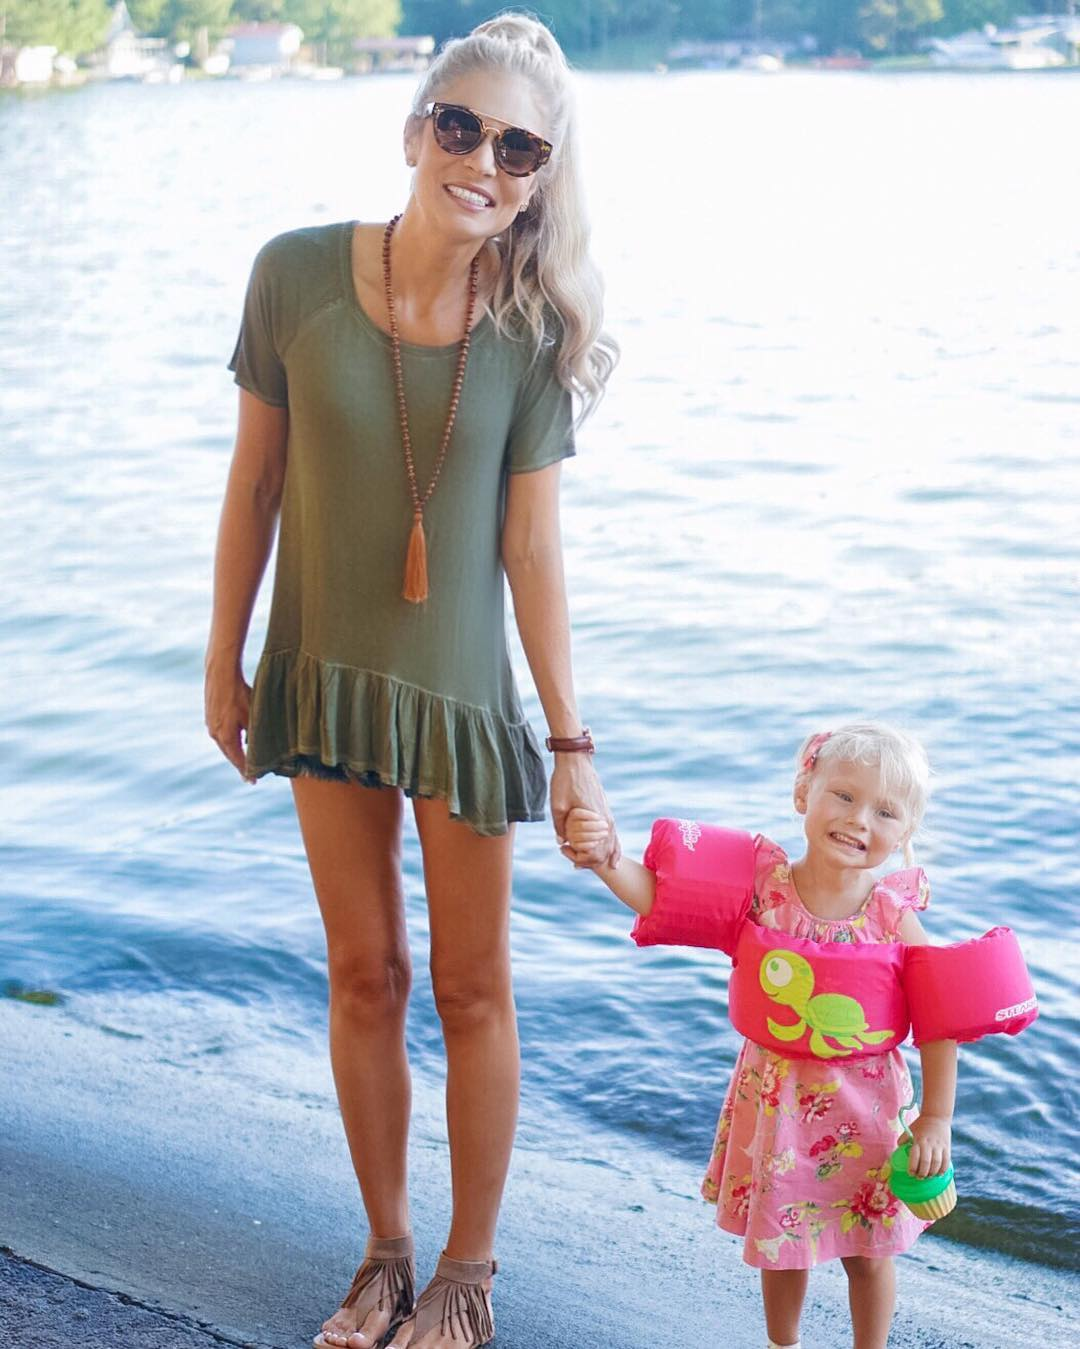 Sunset boat cruise with my main gal! http://liketk.it/2oHw0 #momlife #lifewithblove #vacaymode #4thofjuly